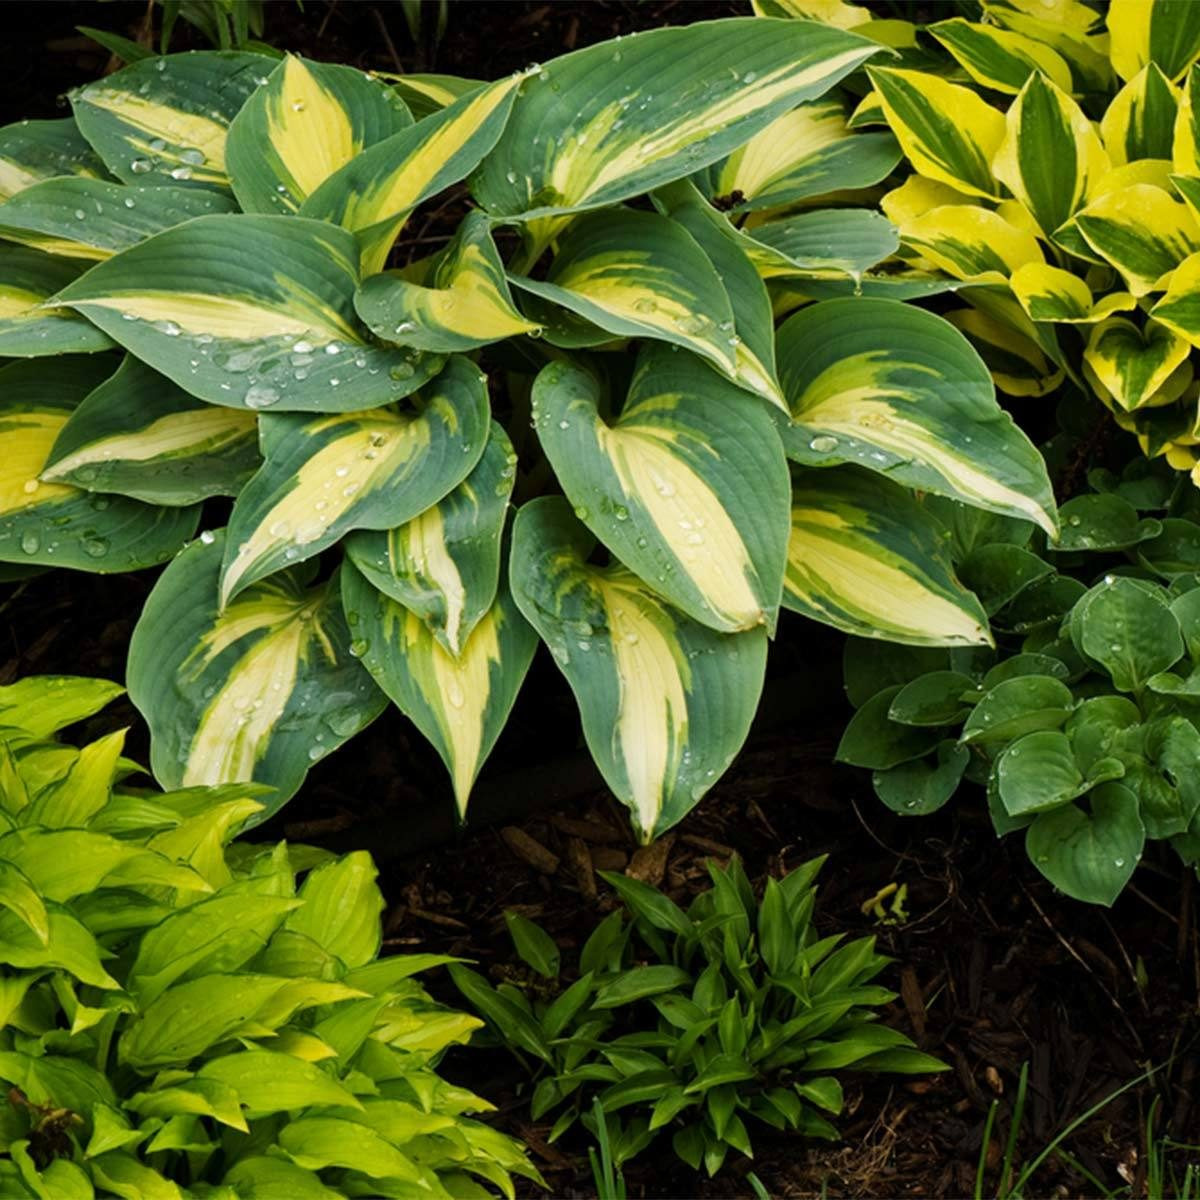 Hosta shrub shade garden plants multi colored leaf plants